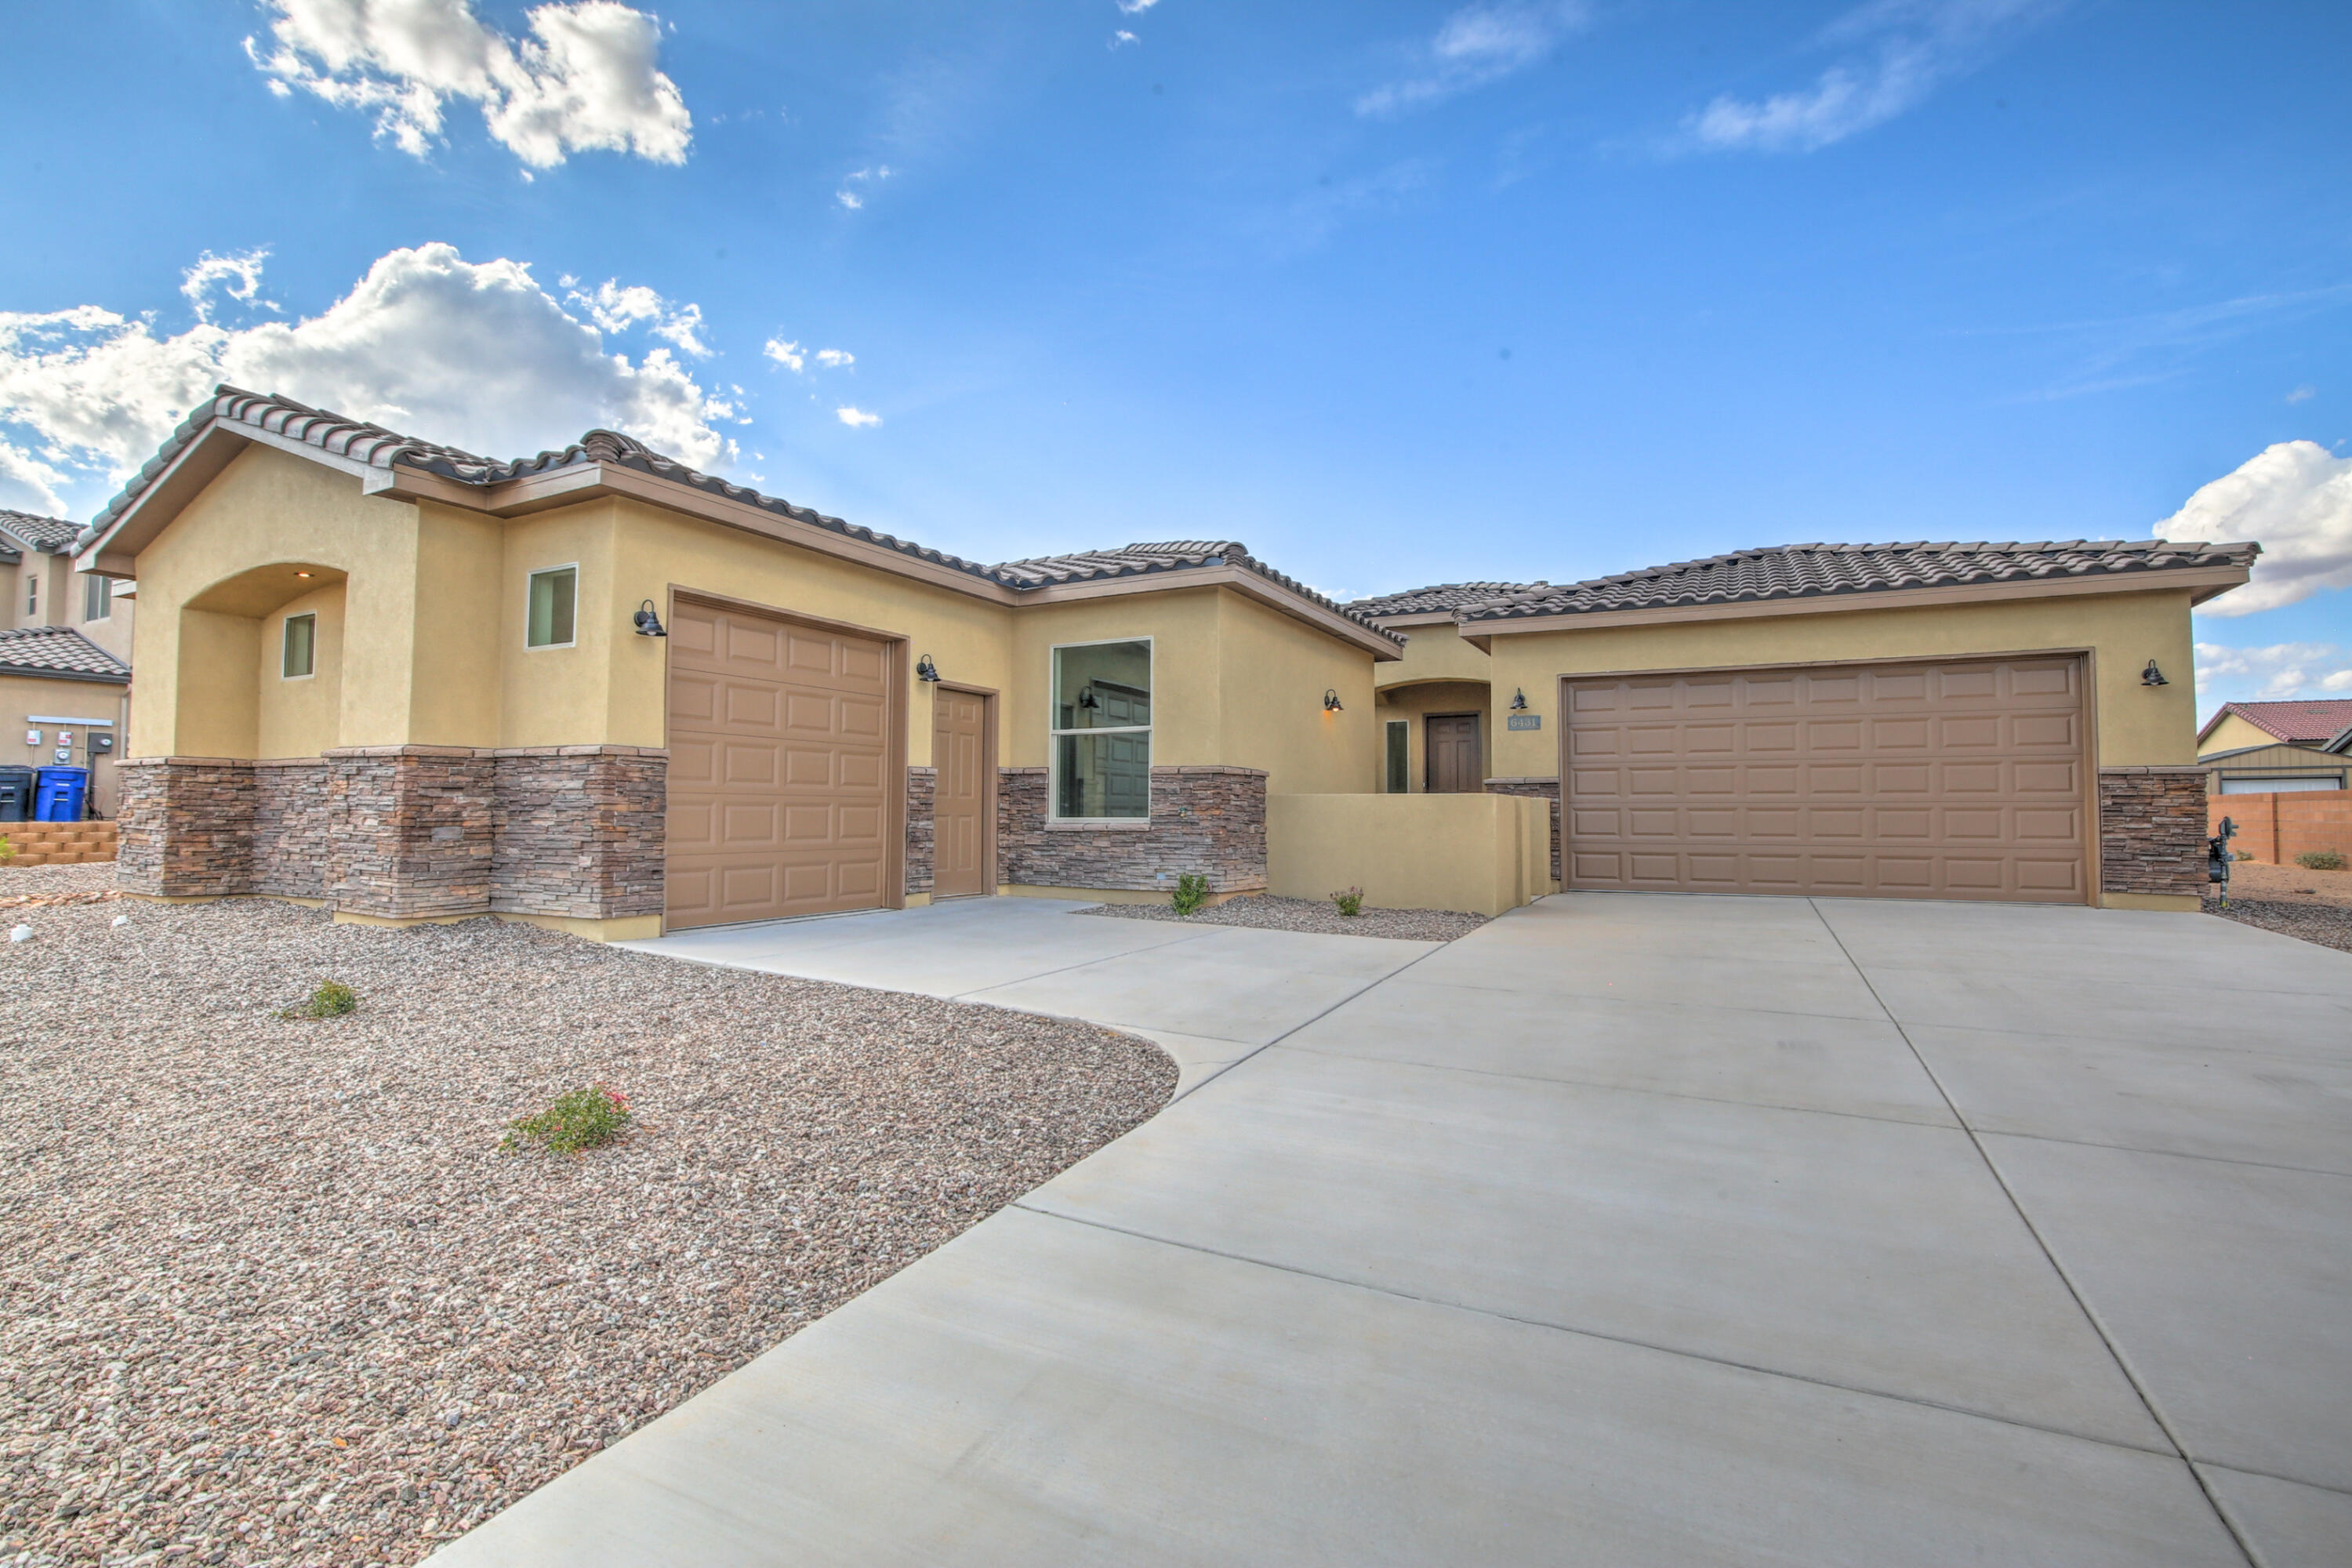 Beautiful new construction in the heart of the Petroglyphs. This open floor plan is four bedroom, two and a half bath, with a three car garage.  Home is currently under construction.  It will come with a dishwasher, refrigerator, microwave, and gas range stove.   Please contact the listing broker to view.